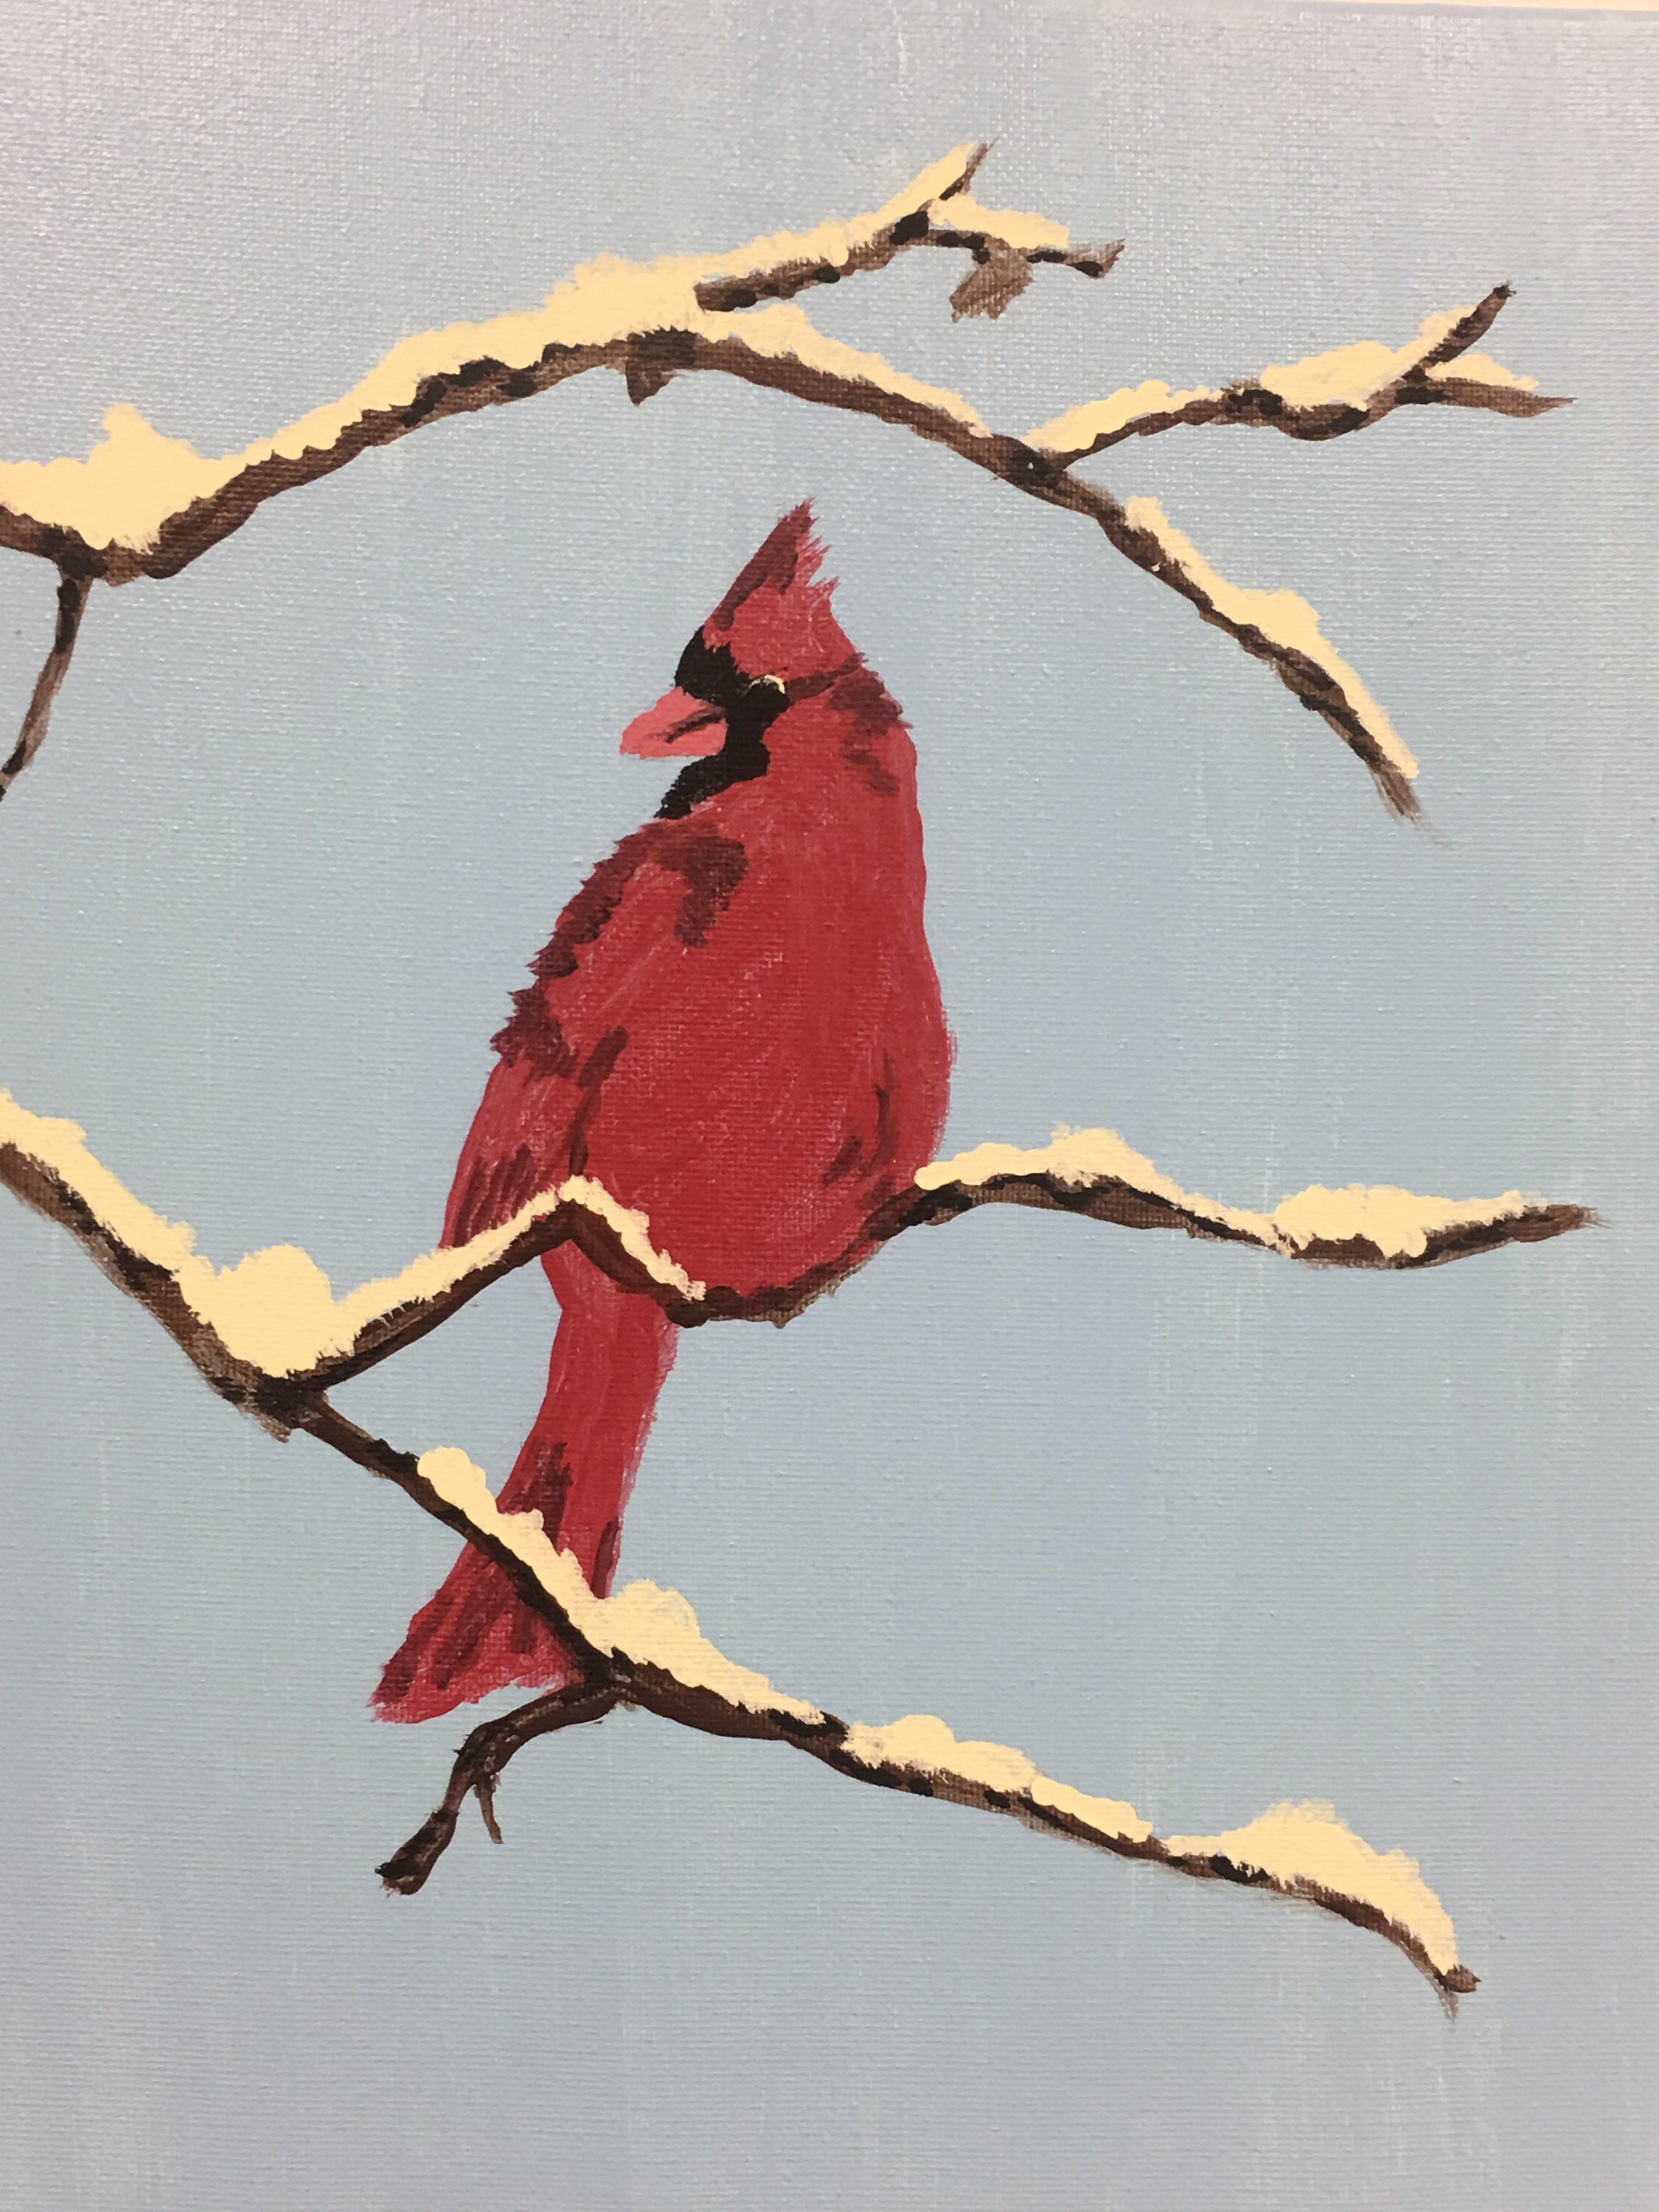 Winter Cardinal (Picture that will be painted)